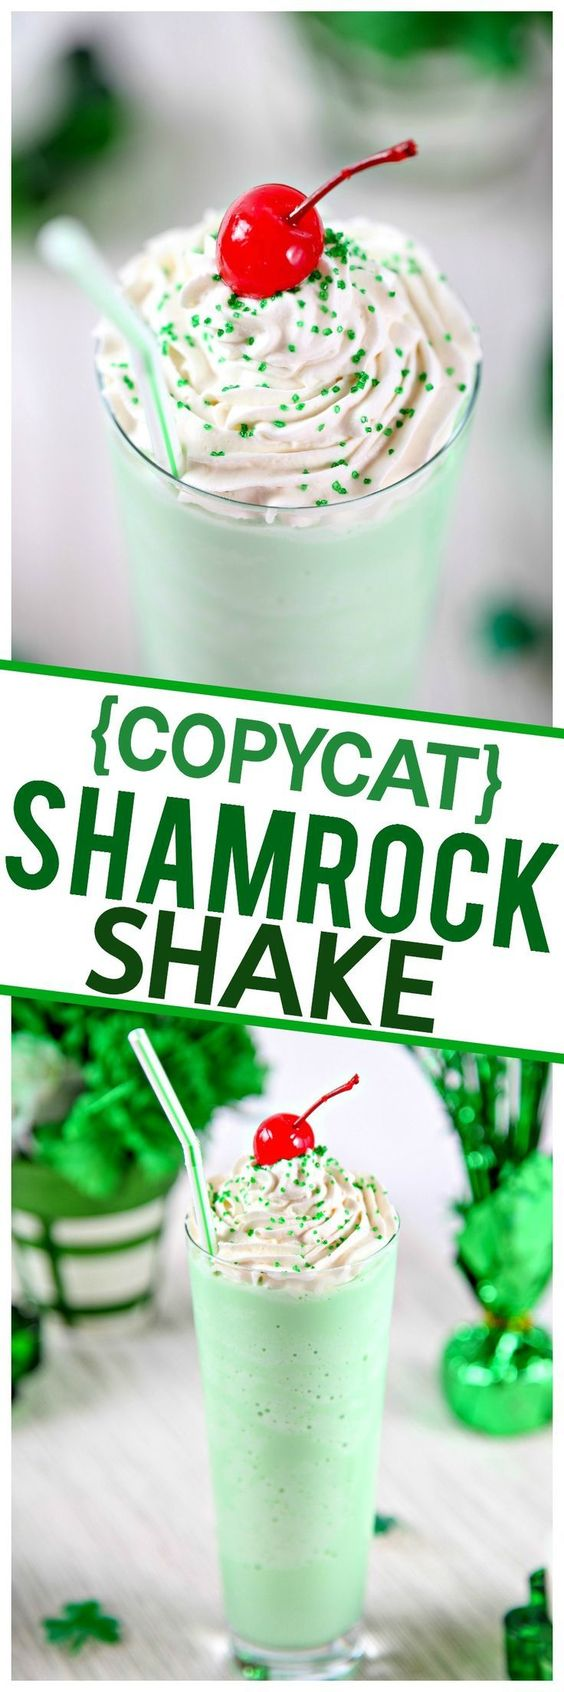 {COPYCAT} Homemade Shamrock Shake Recipe via Baking Beauty - Cool and creamy mint shake that tastes just like McDonald's Shamrock Shakes. Only 4 simple ingredients, no blender required!